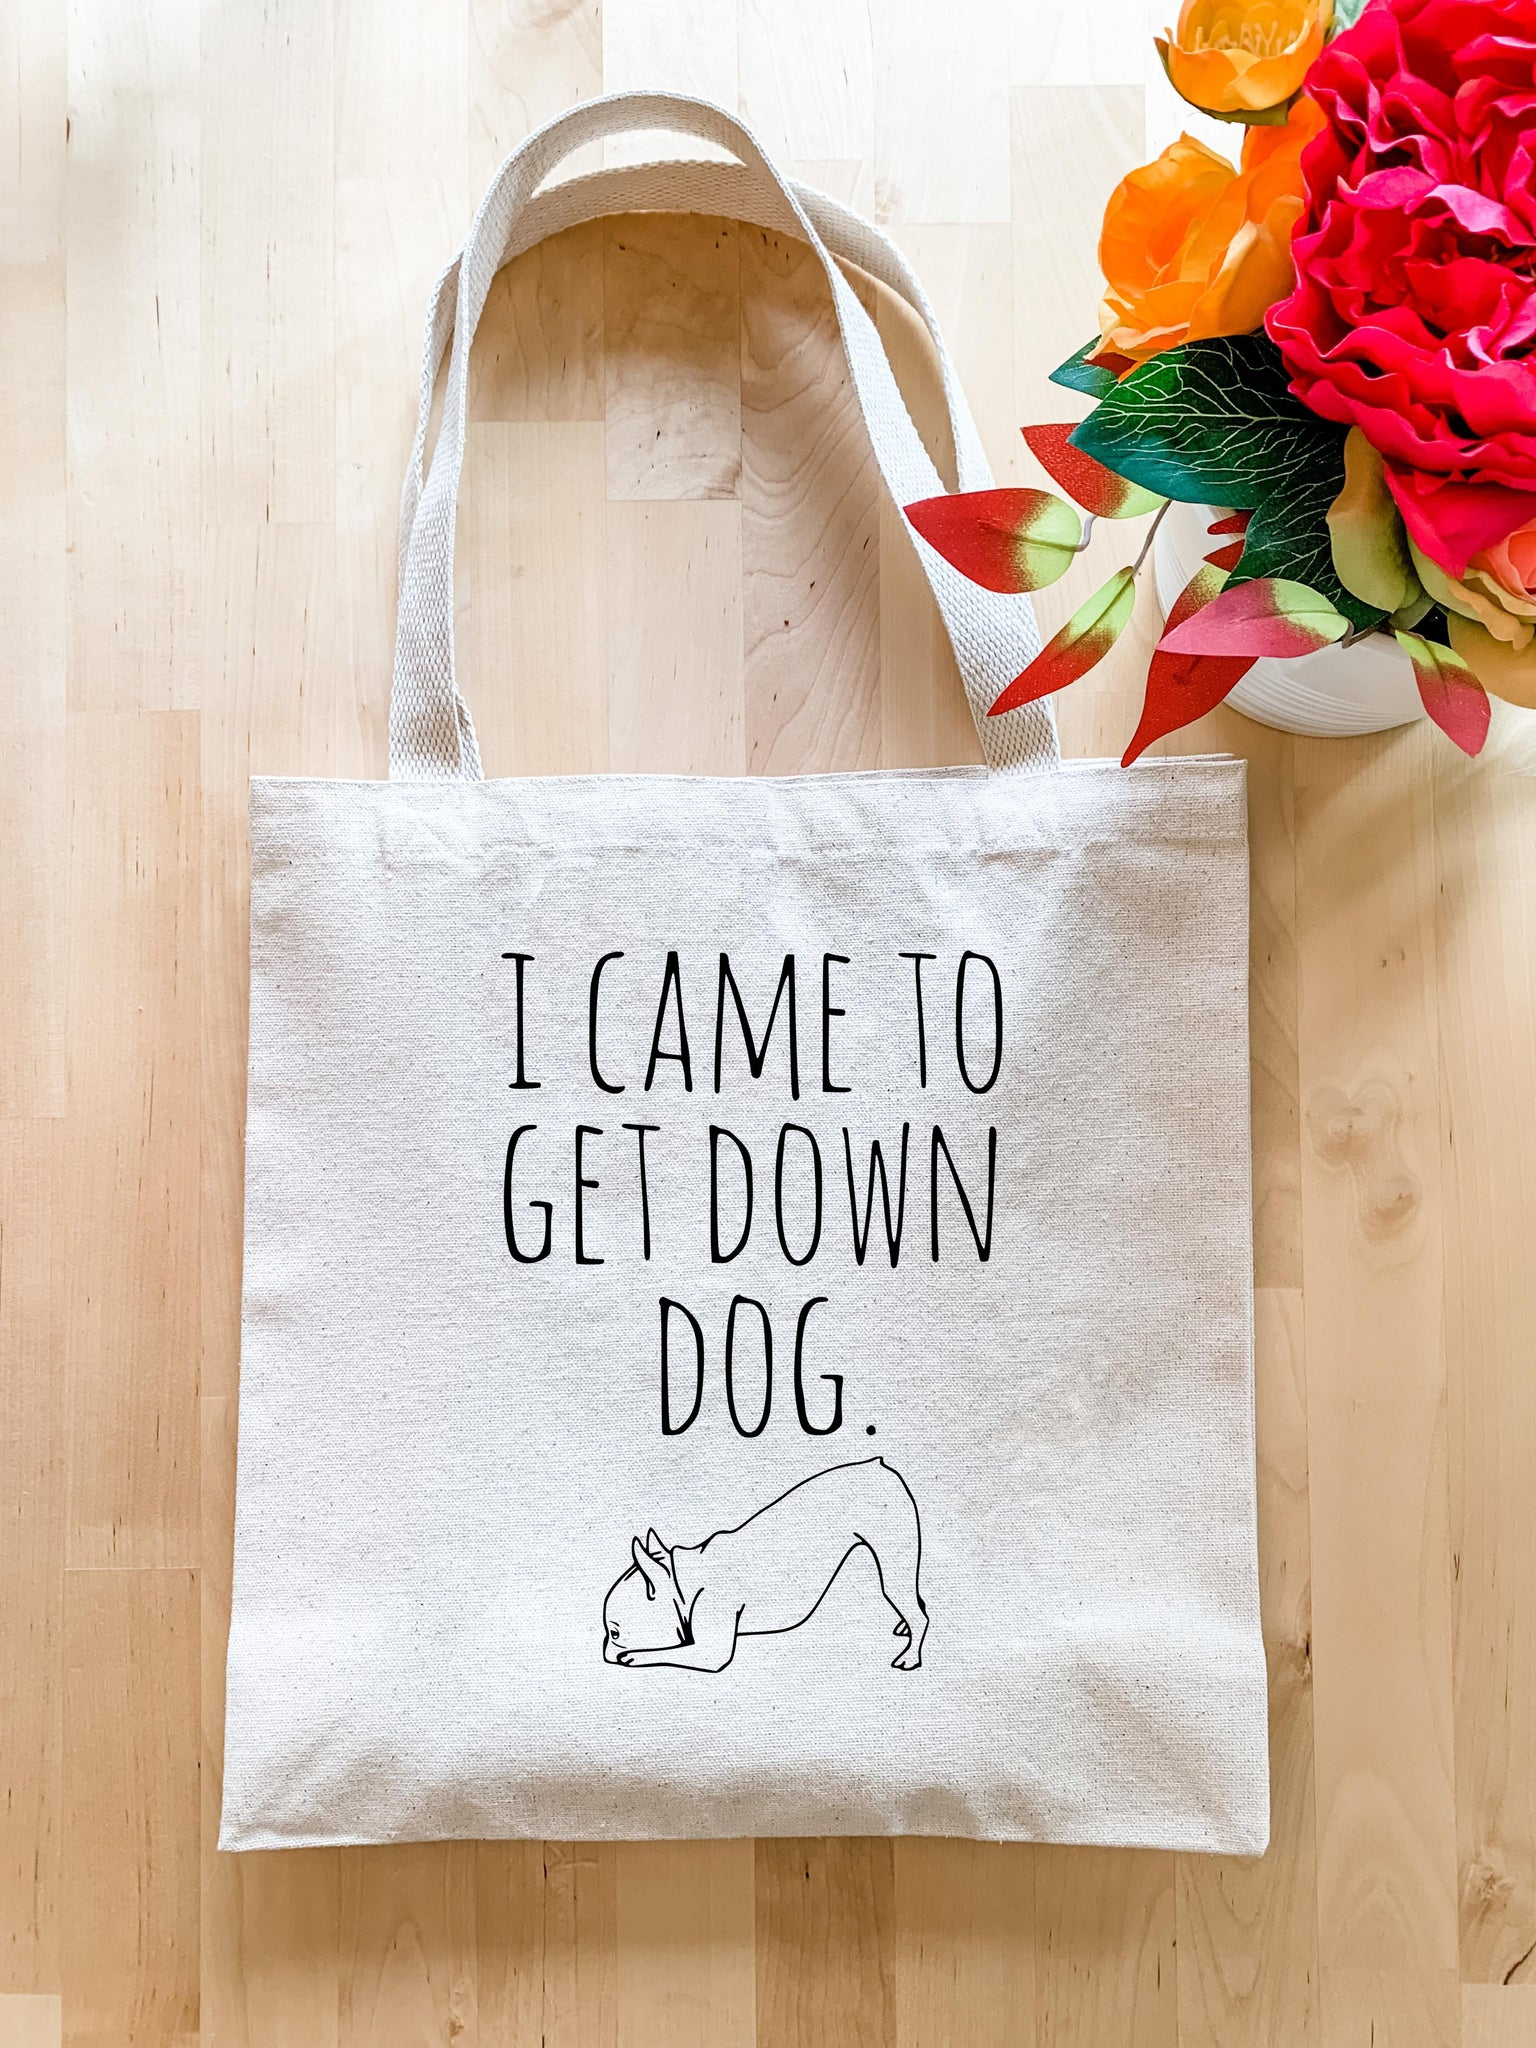 I Came to Get Down Dog - Tote Bag - MoonlightMakers